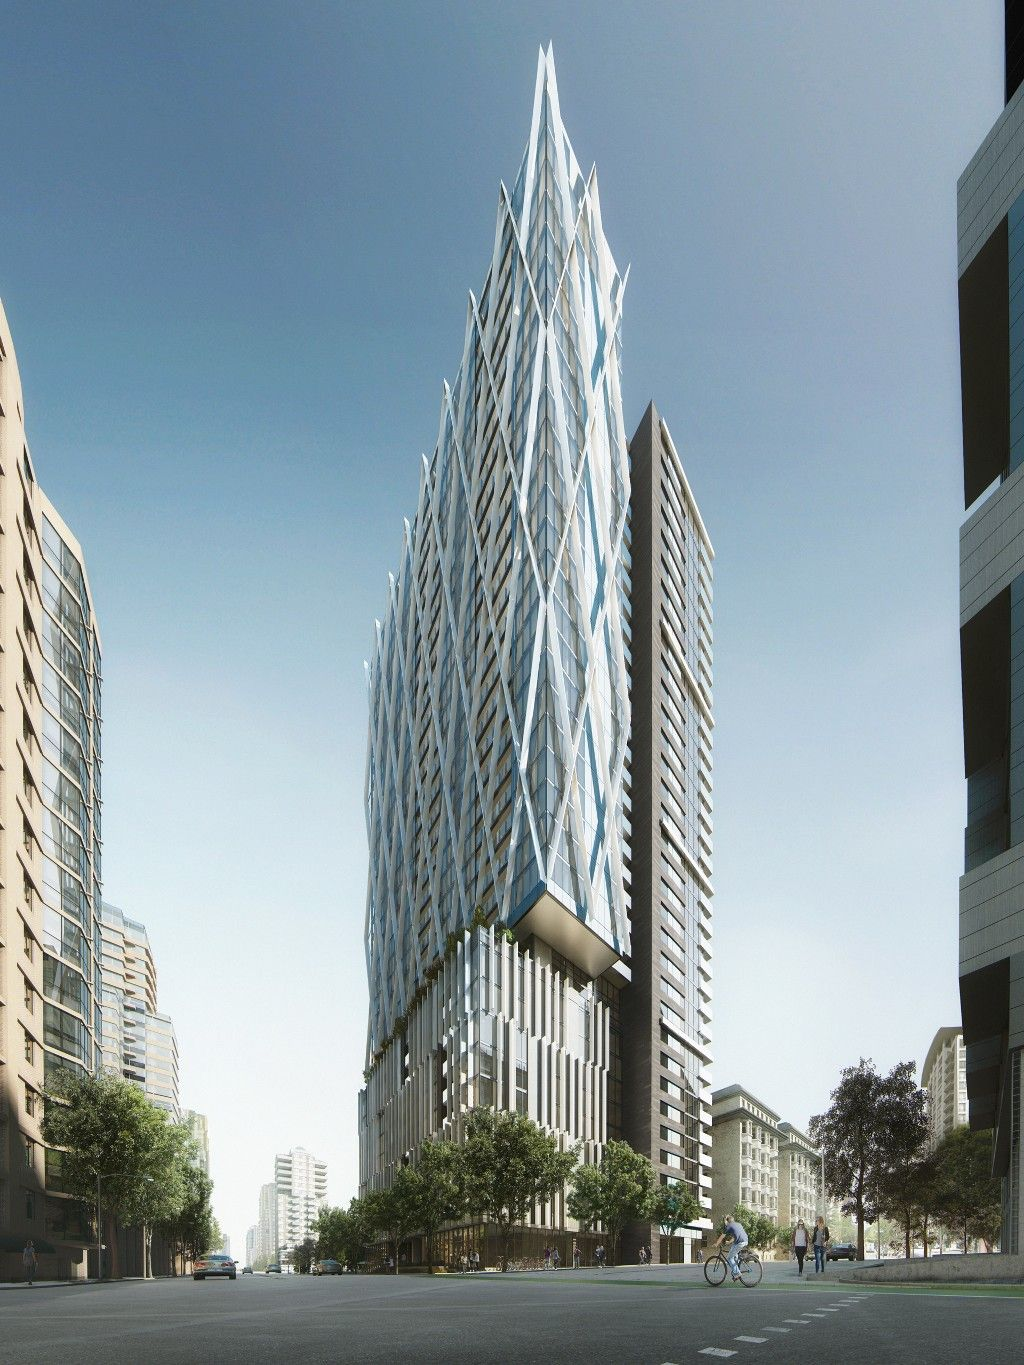 Main Photo: 1111 Richards Street in Vancouver: Yaletown Condo for sale (Vancouver West)